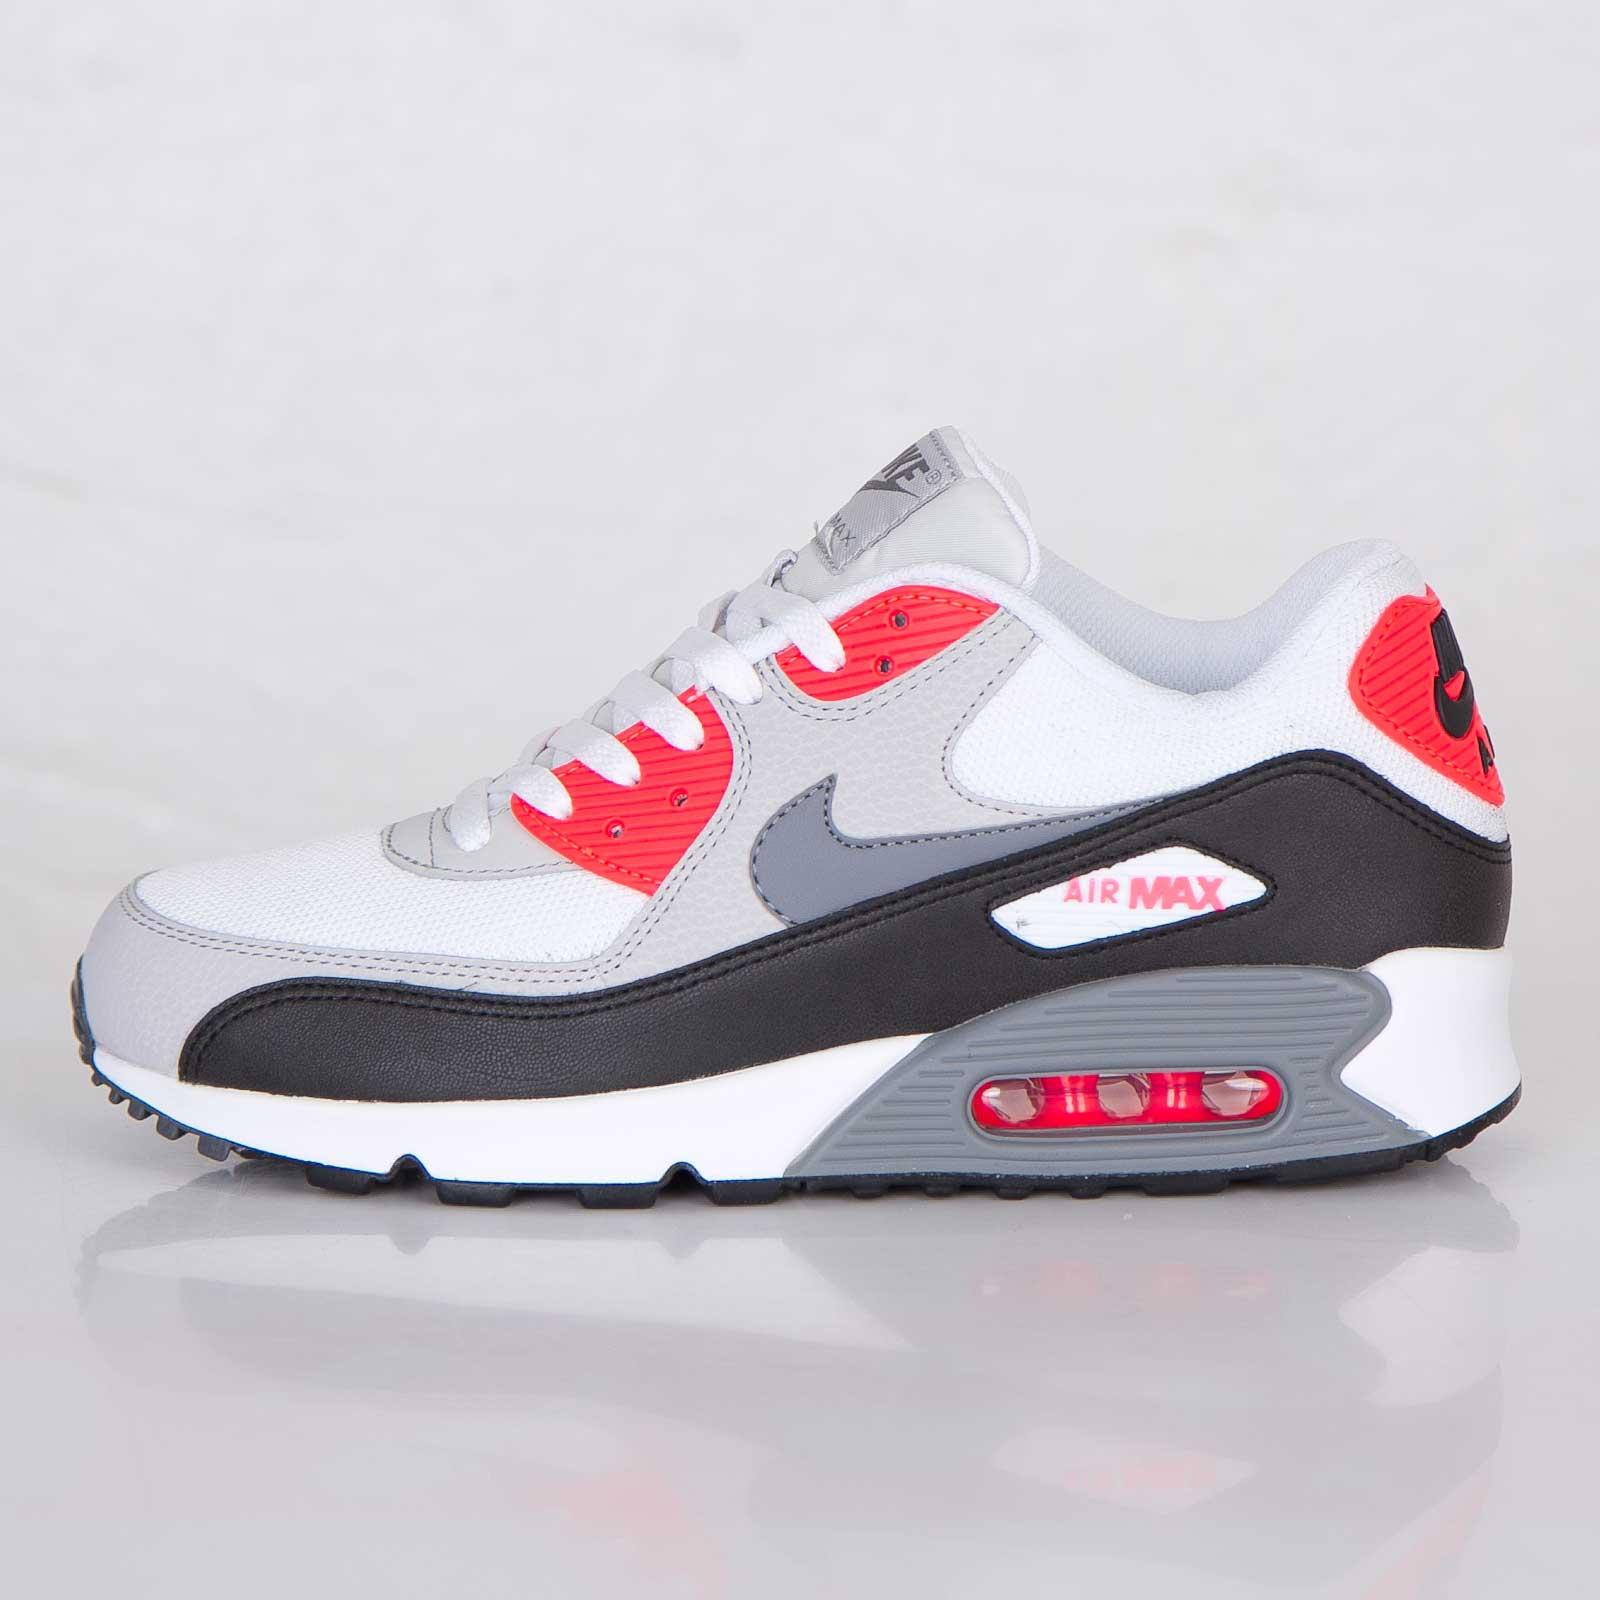 nike air max 90 red white black